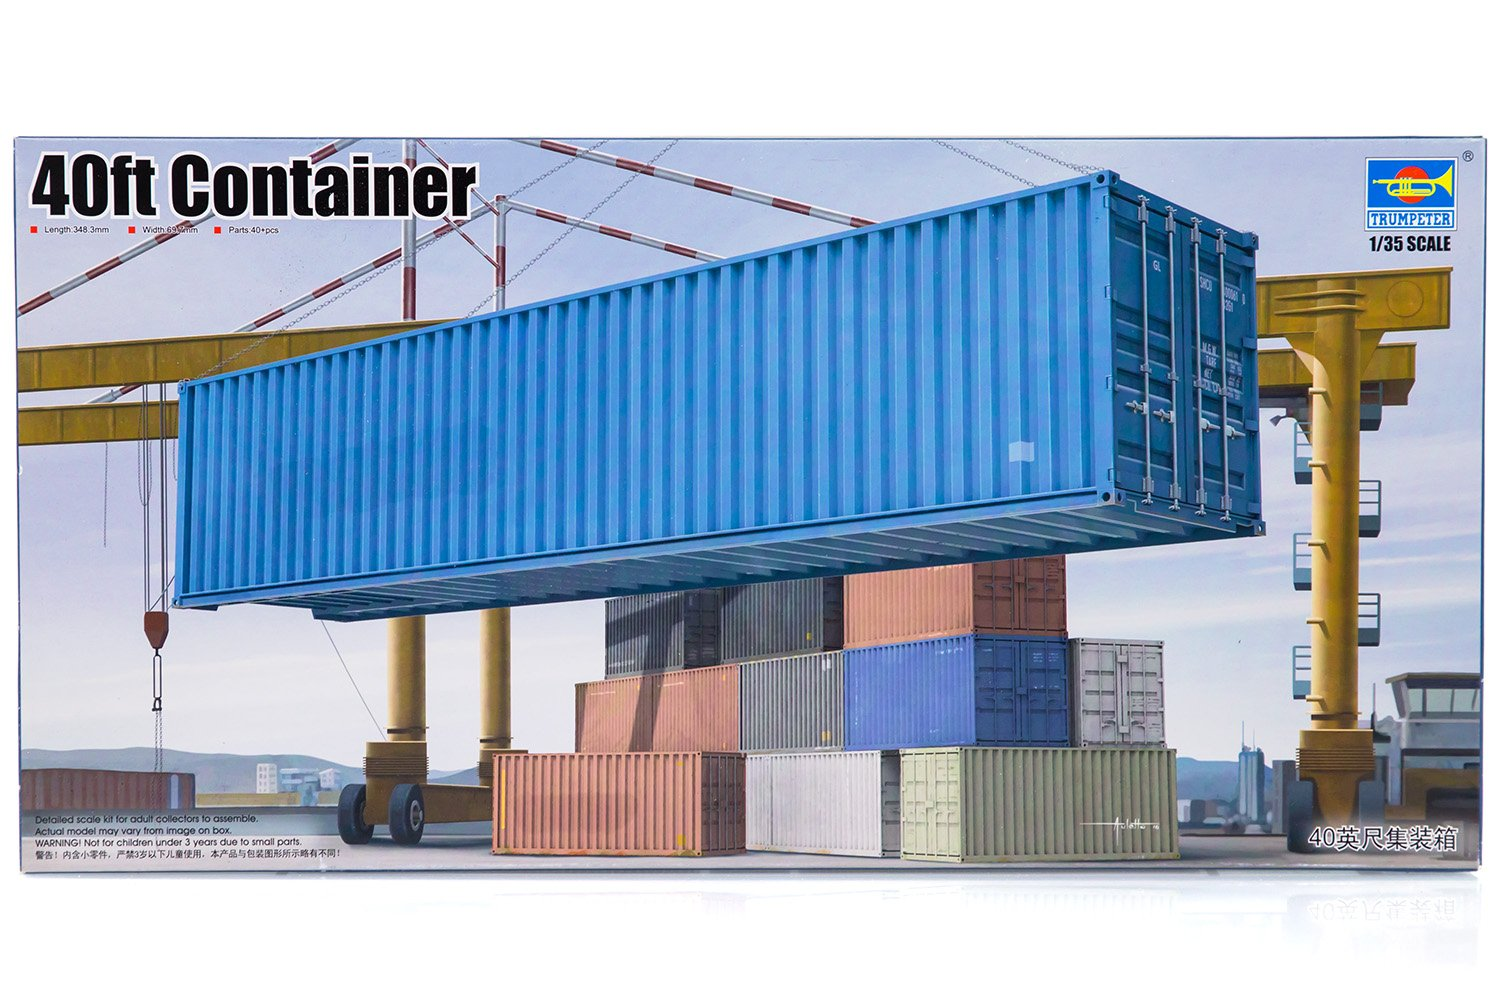 40ft Shipping Container >> 01030 Trumpeter 1 35 40ft Shipping Container Scaled Plastic Model Kit